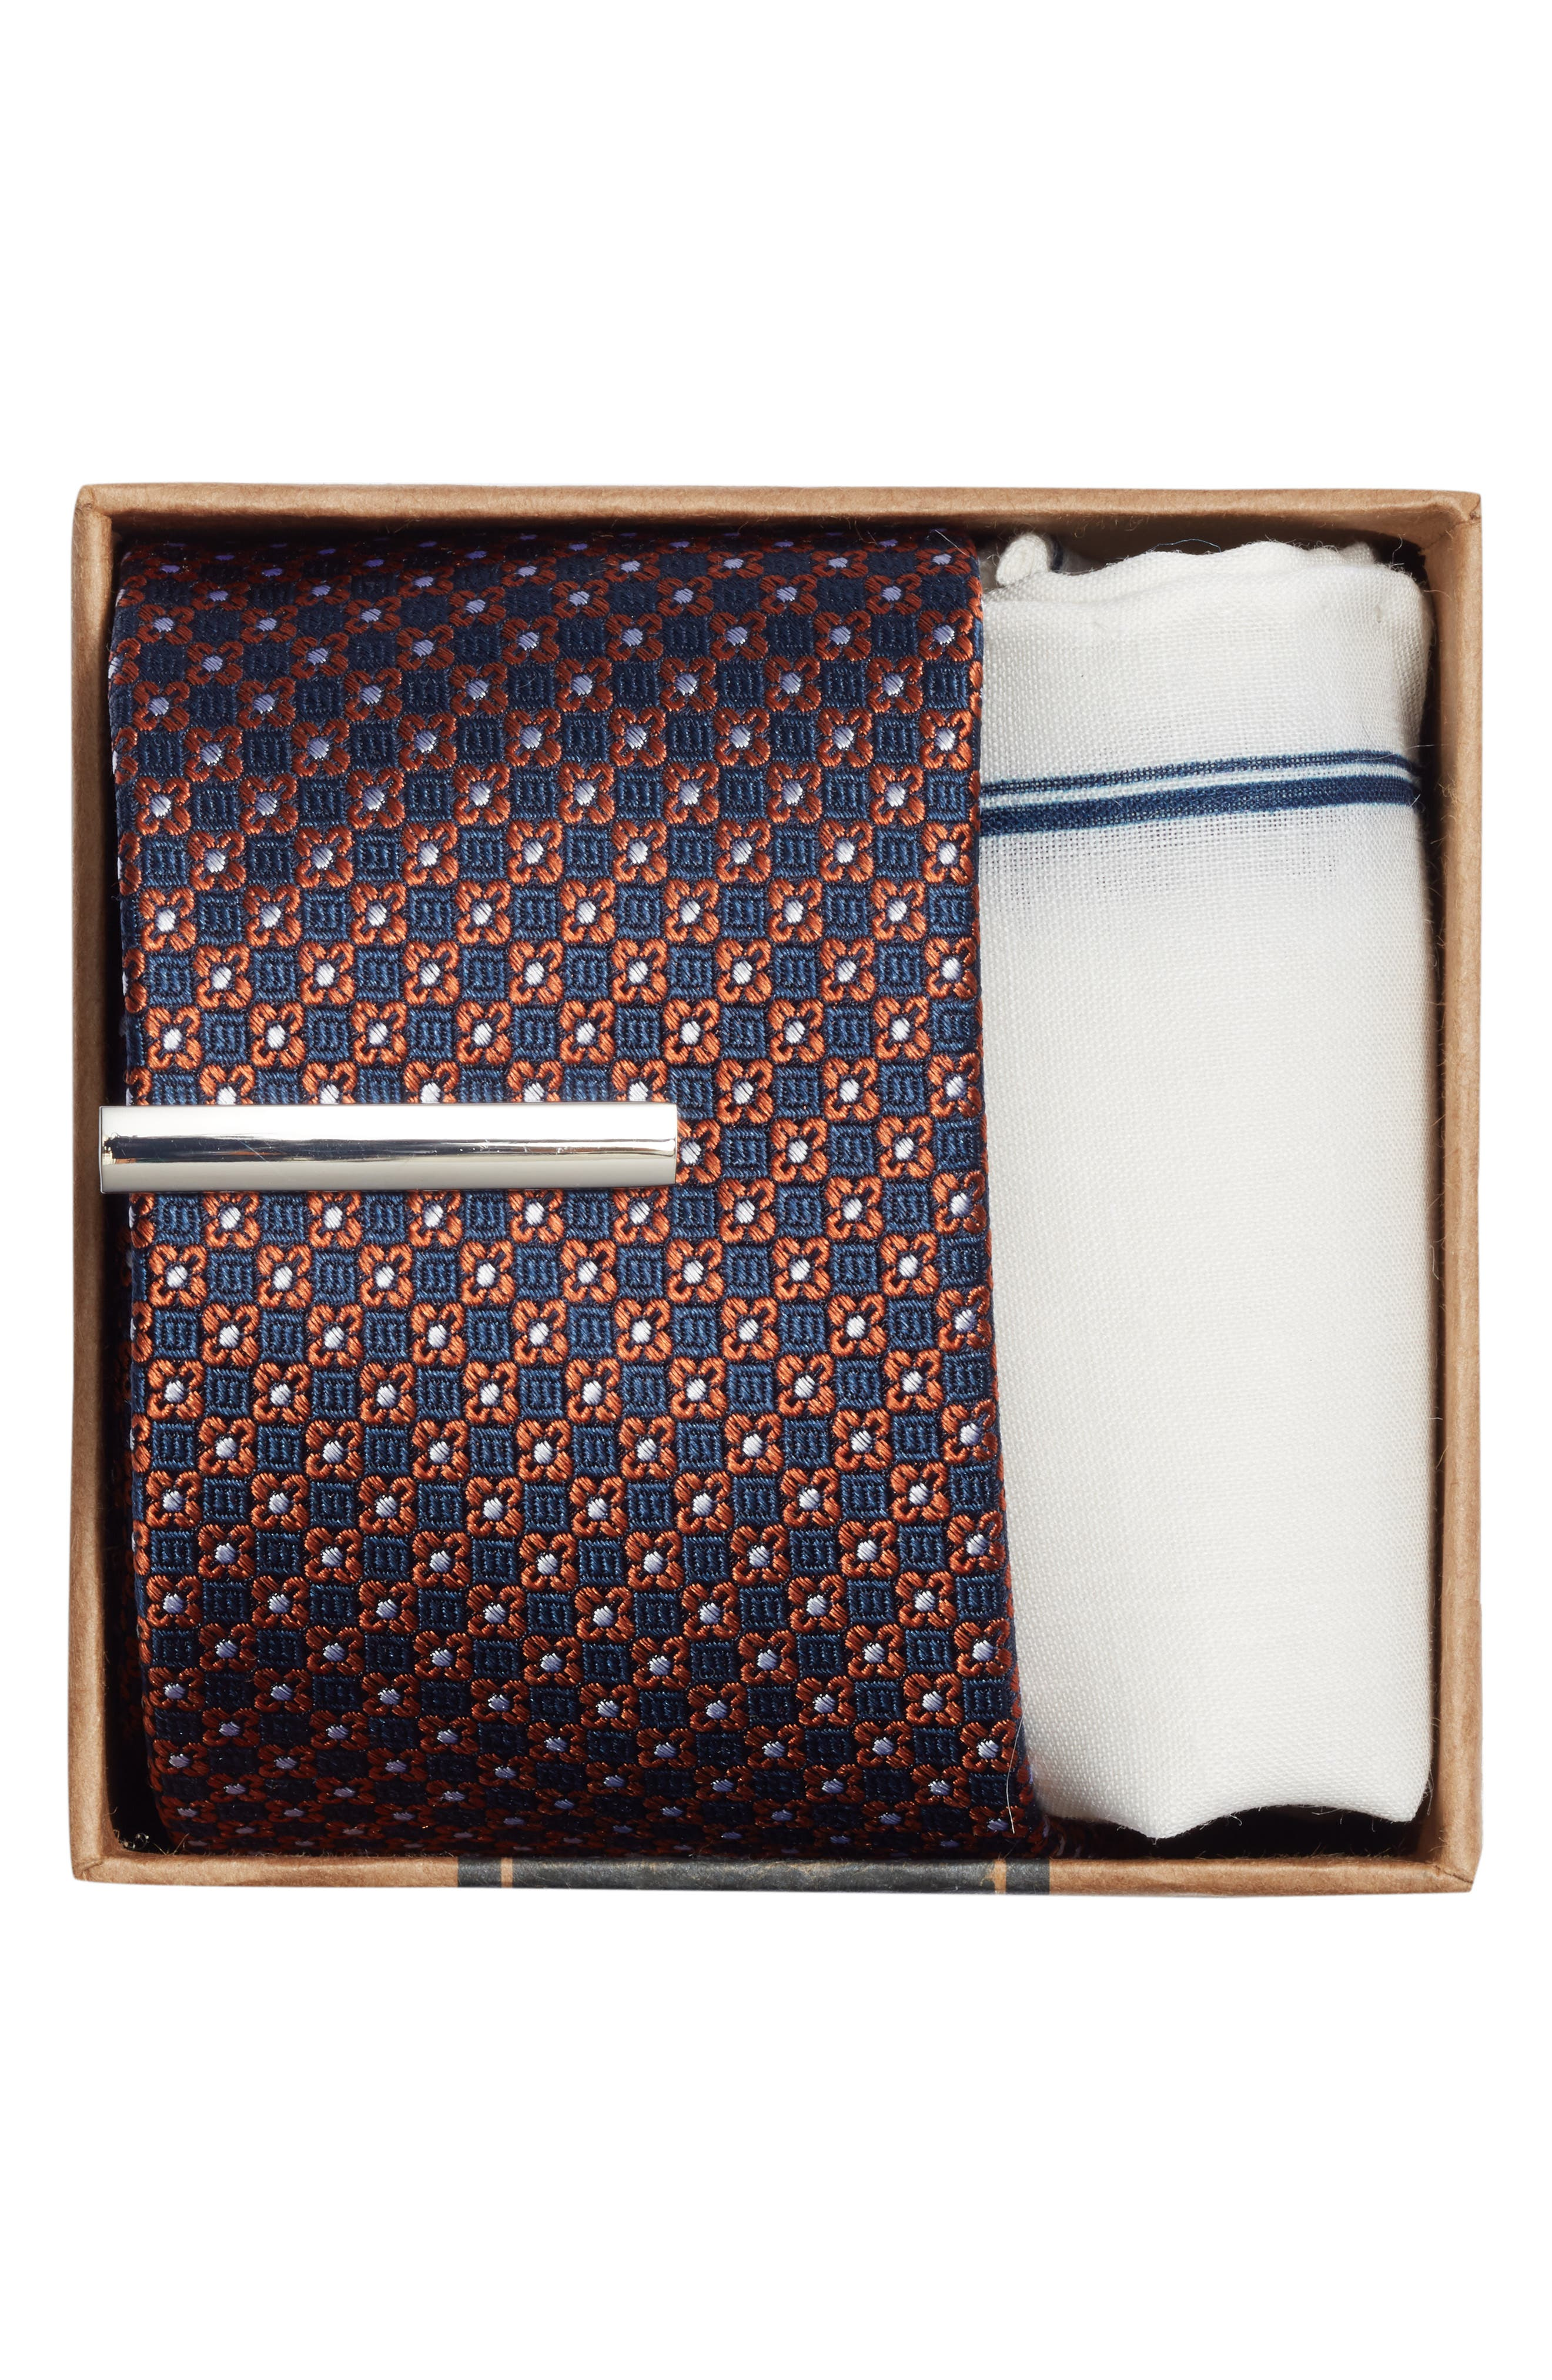 Flower Network 3-Piece Skinny Tie Style Box,                             Alternate thumbnail 2, color,                             ORANGE